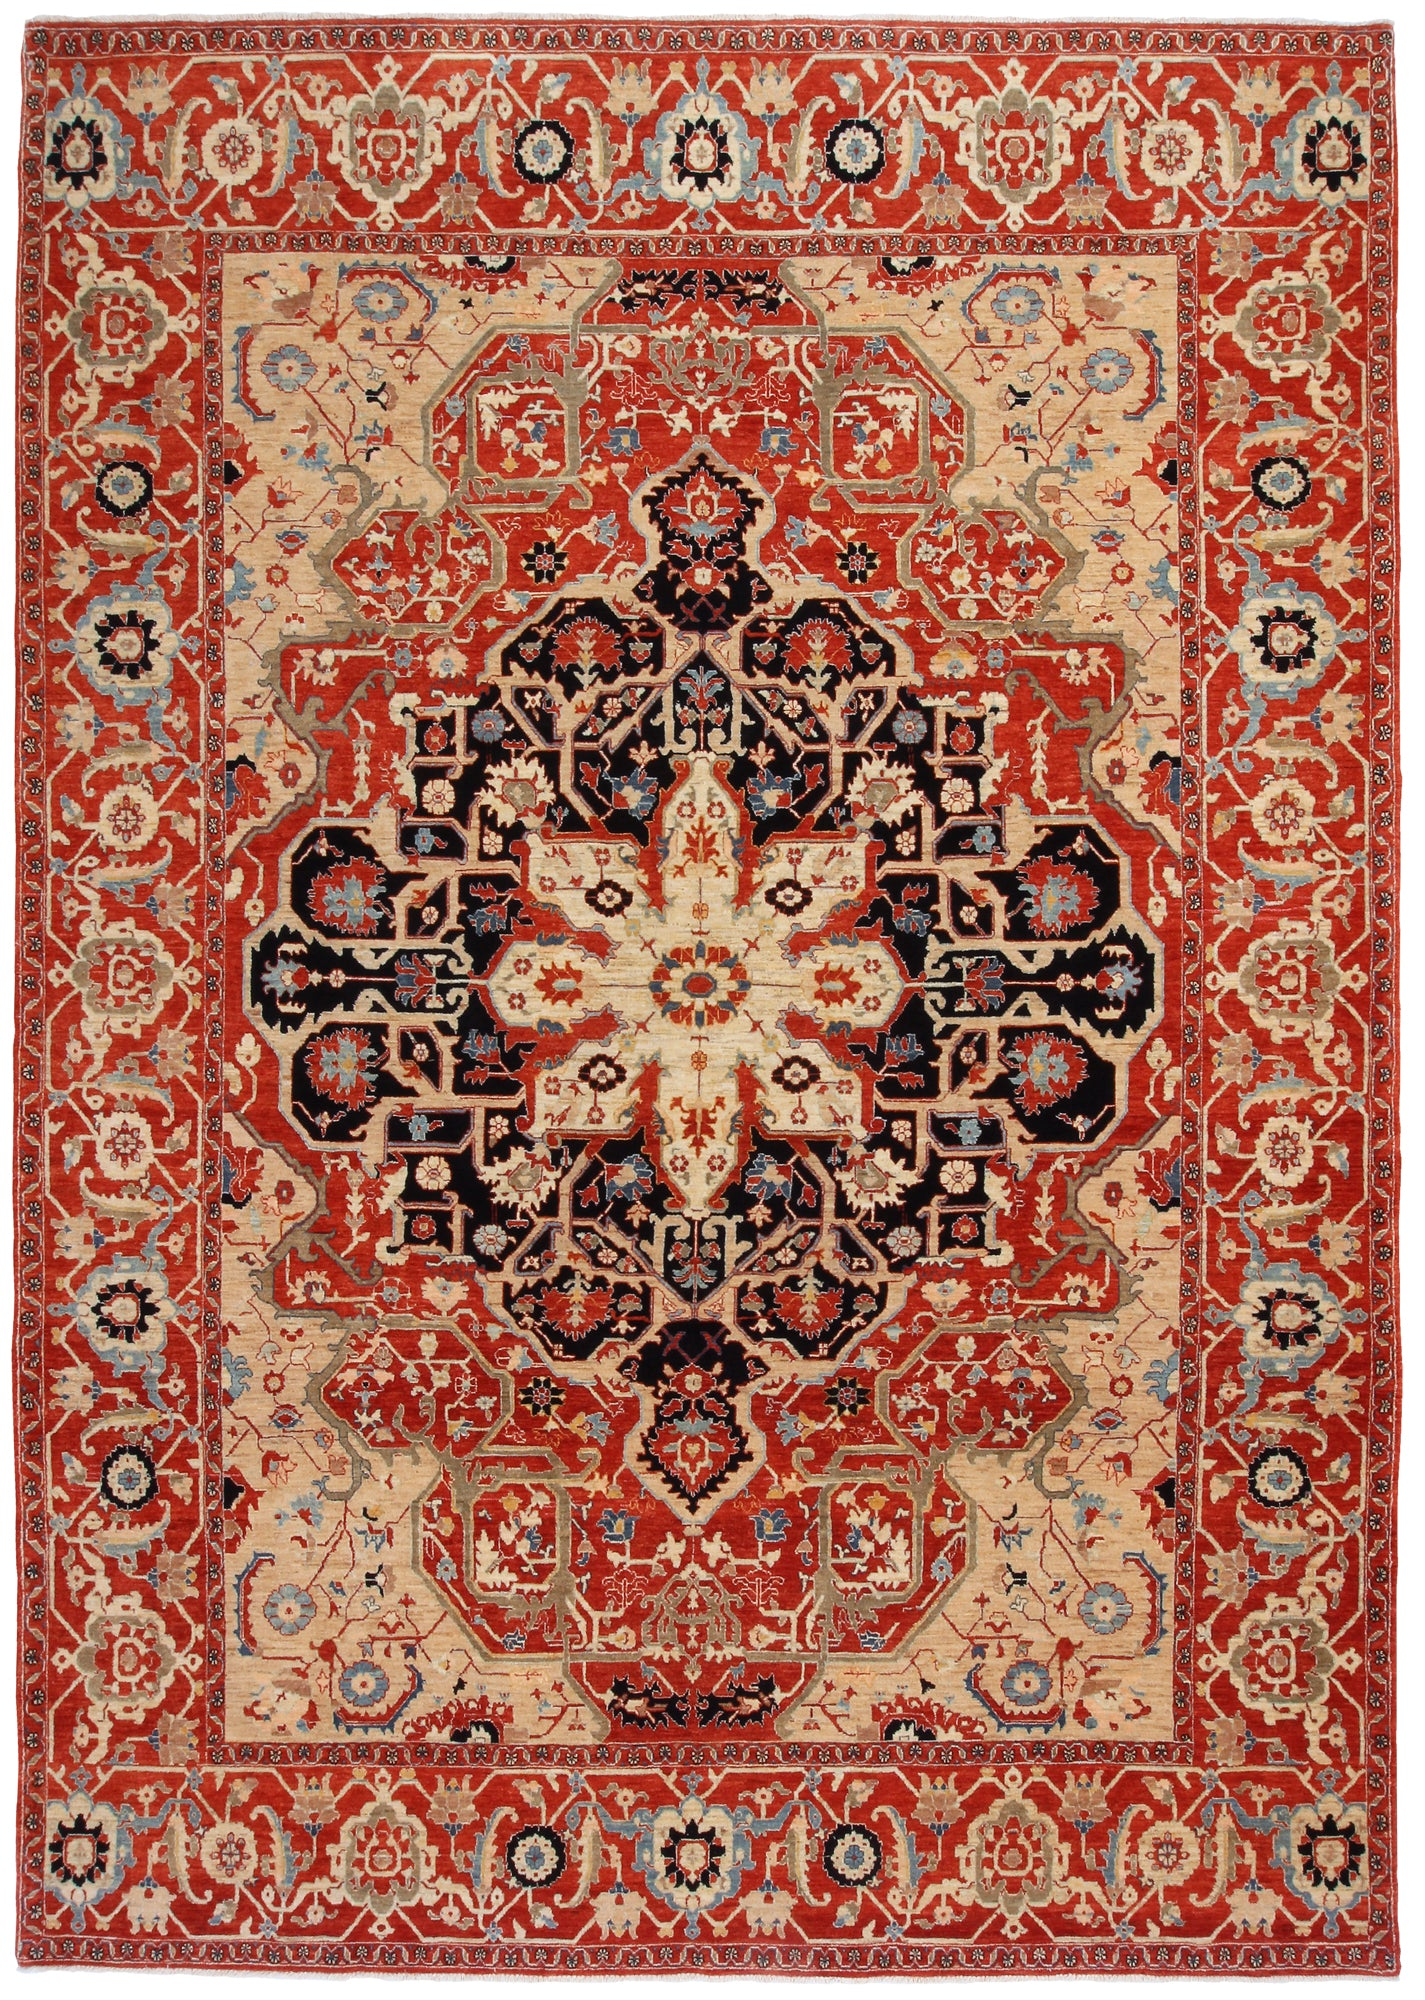 Heriz Design Rug India Turco Persian Rug Company Inc